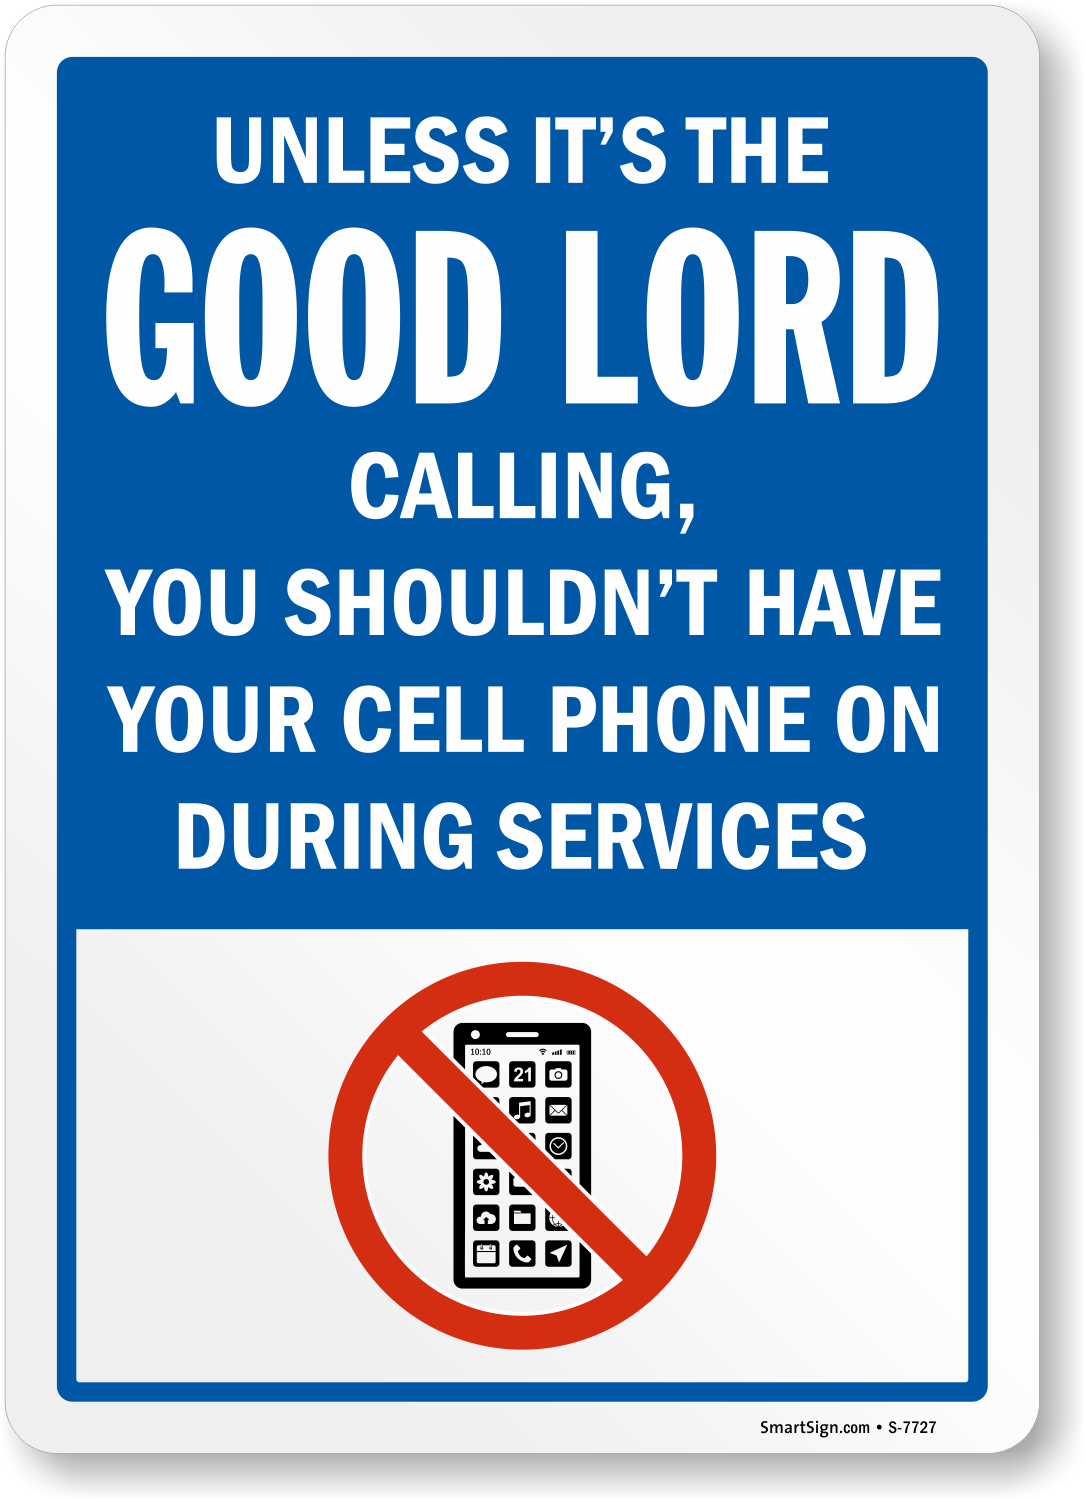 how to stop telemarketers calling your cell phone